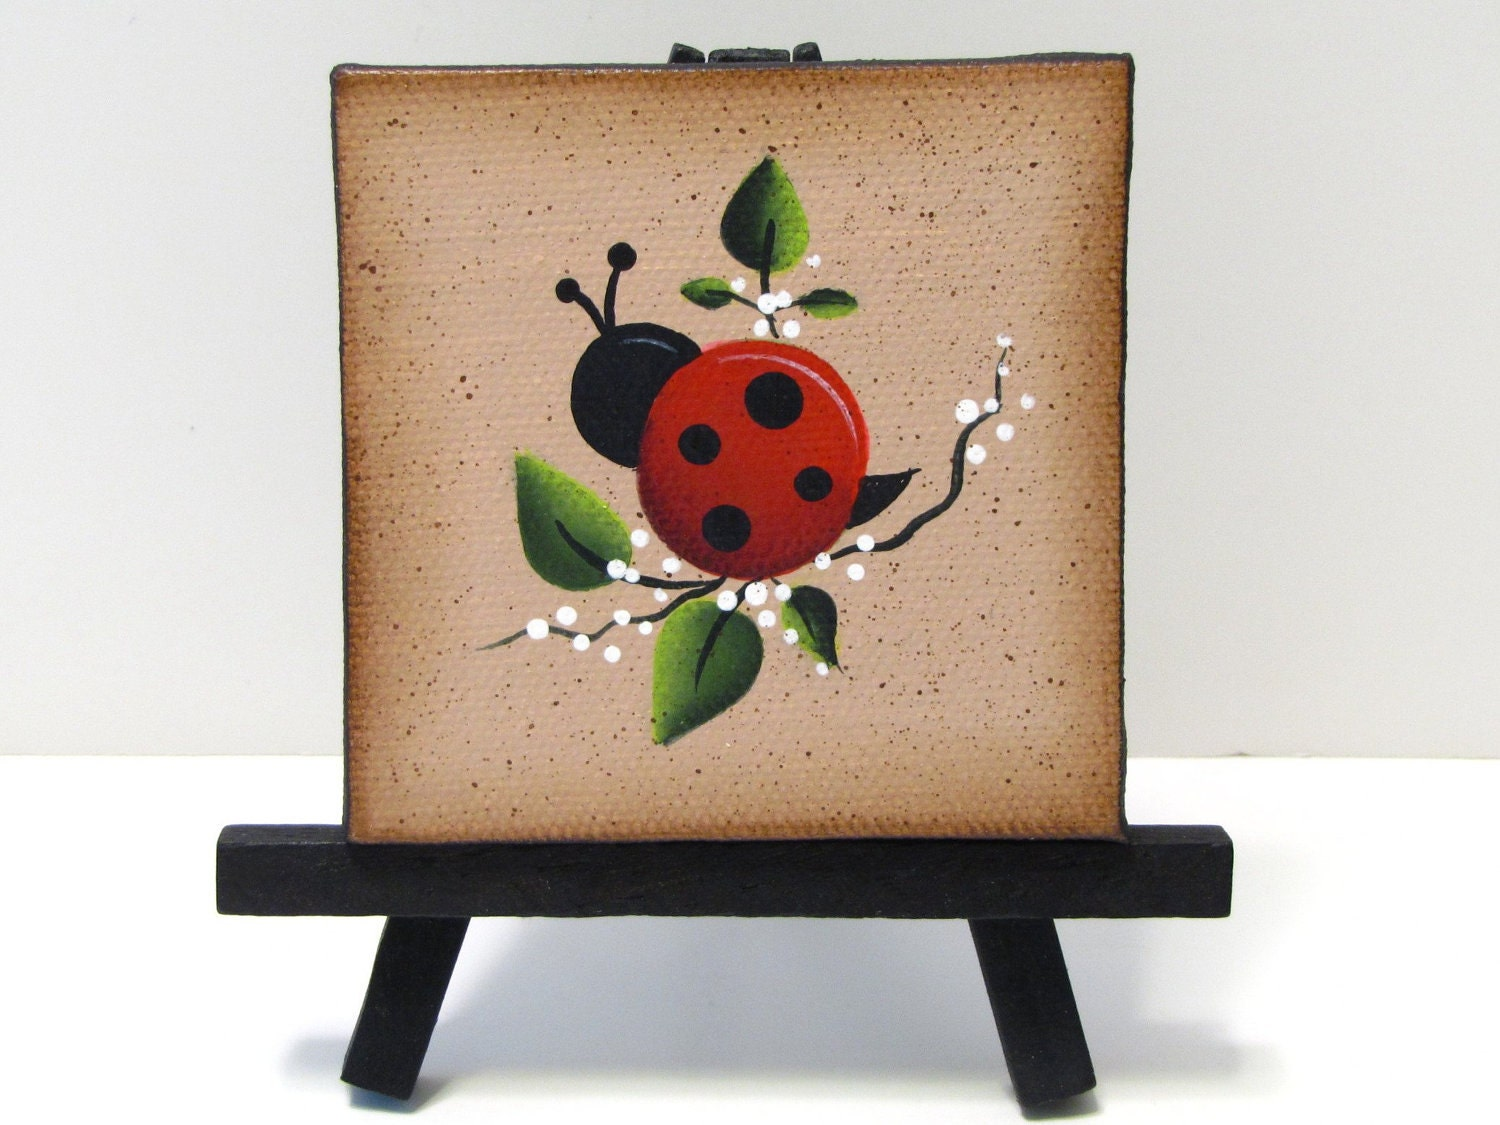 How To Paint A Ladybug On Canvas